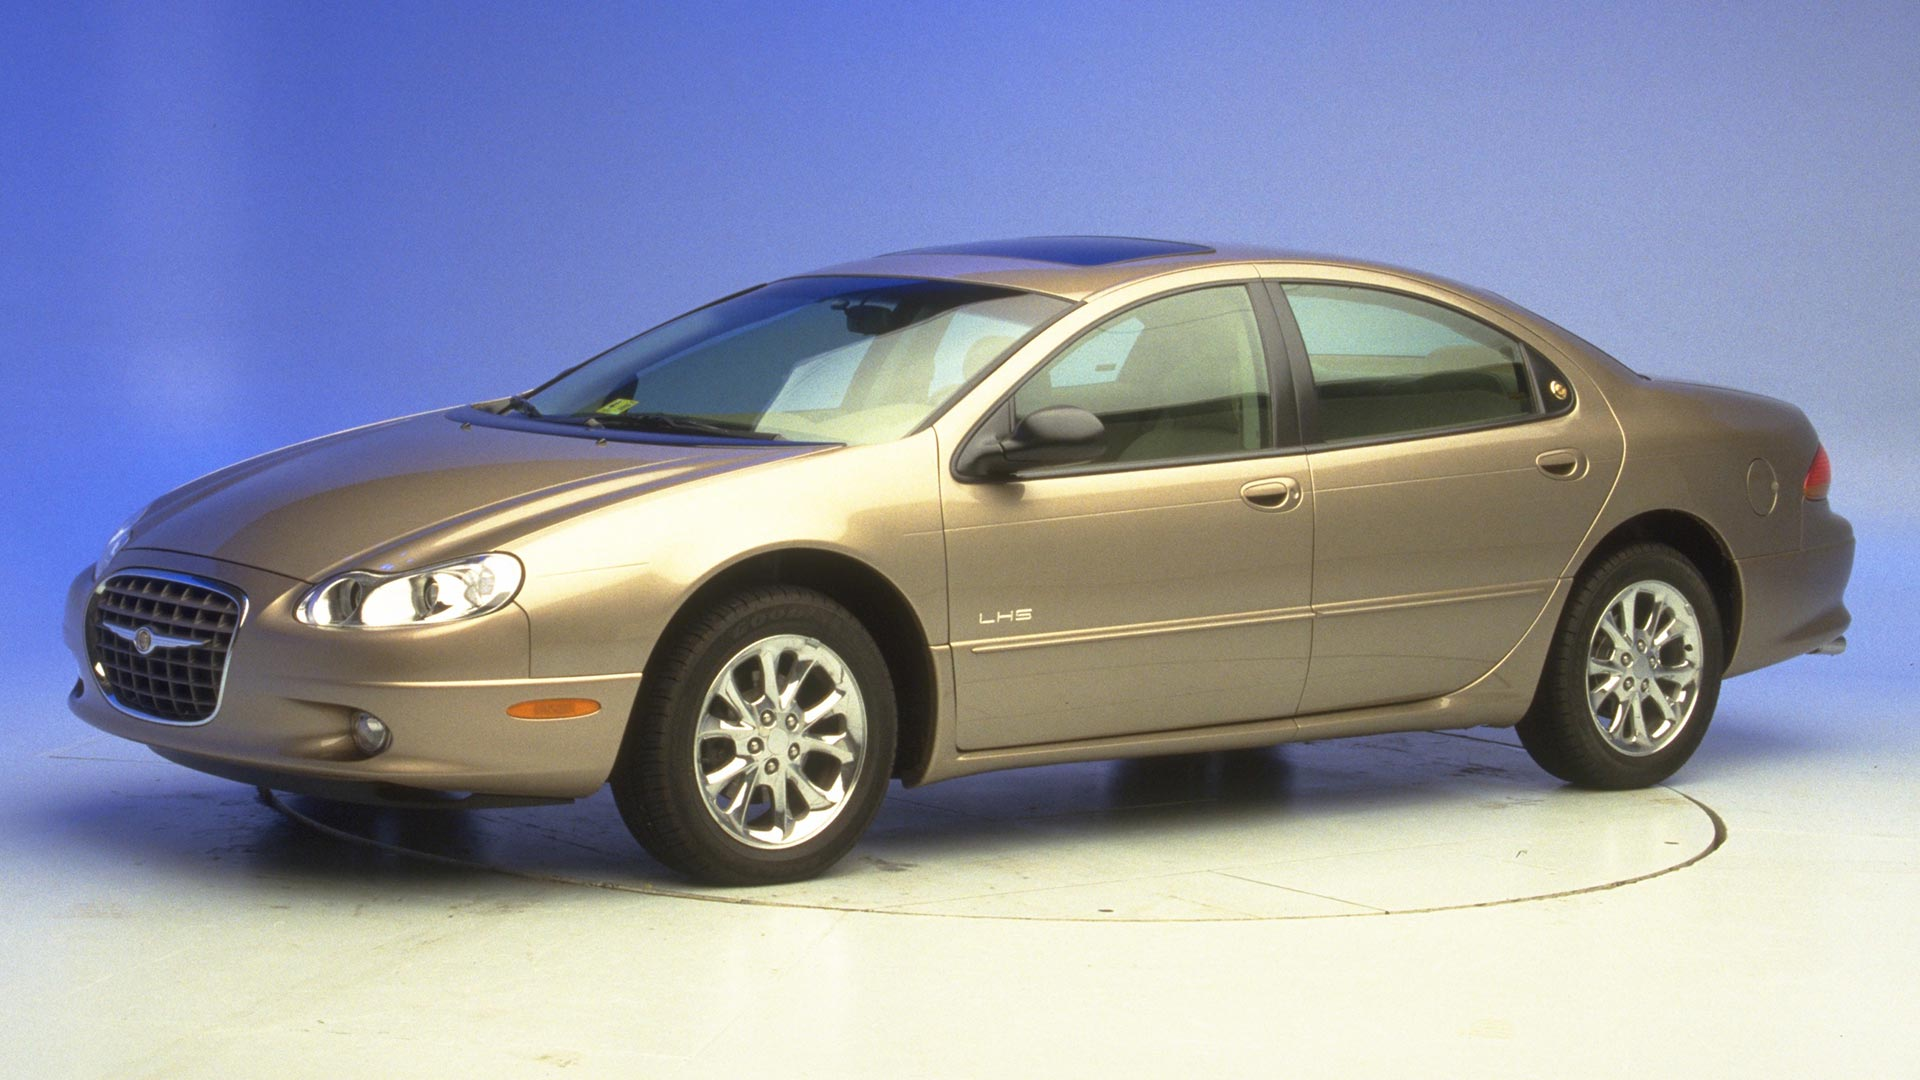 2000 Chrysler LHS 4-door sedan